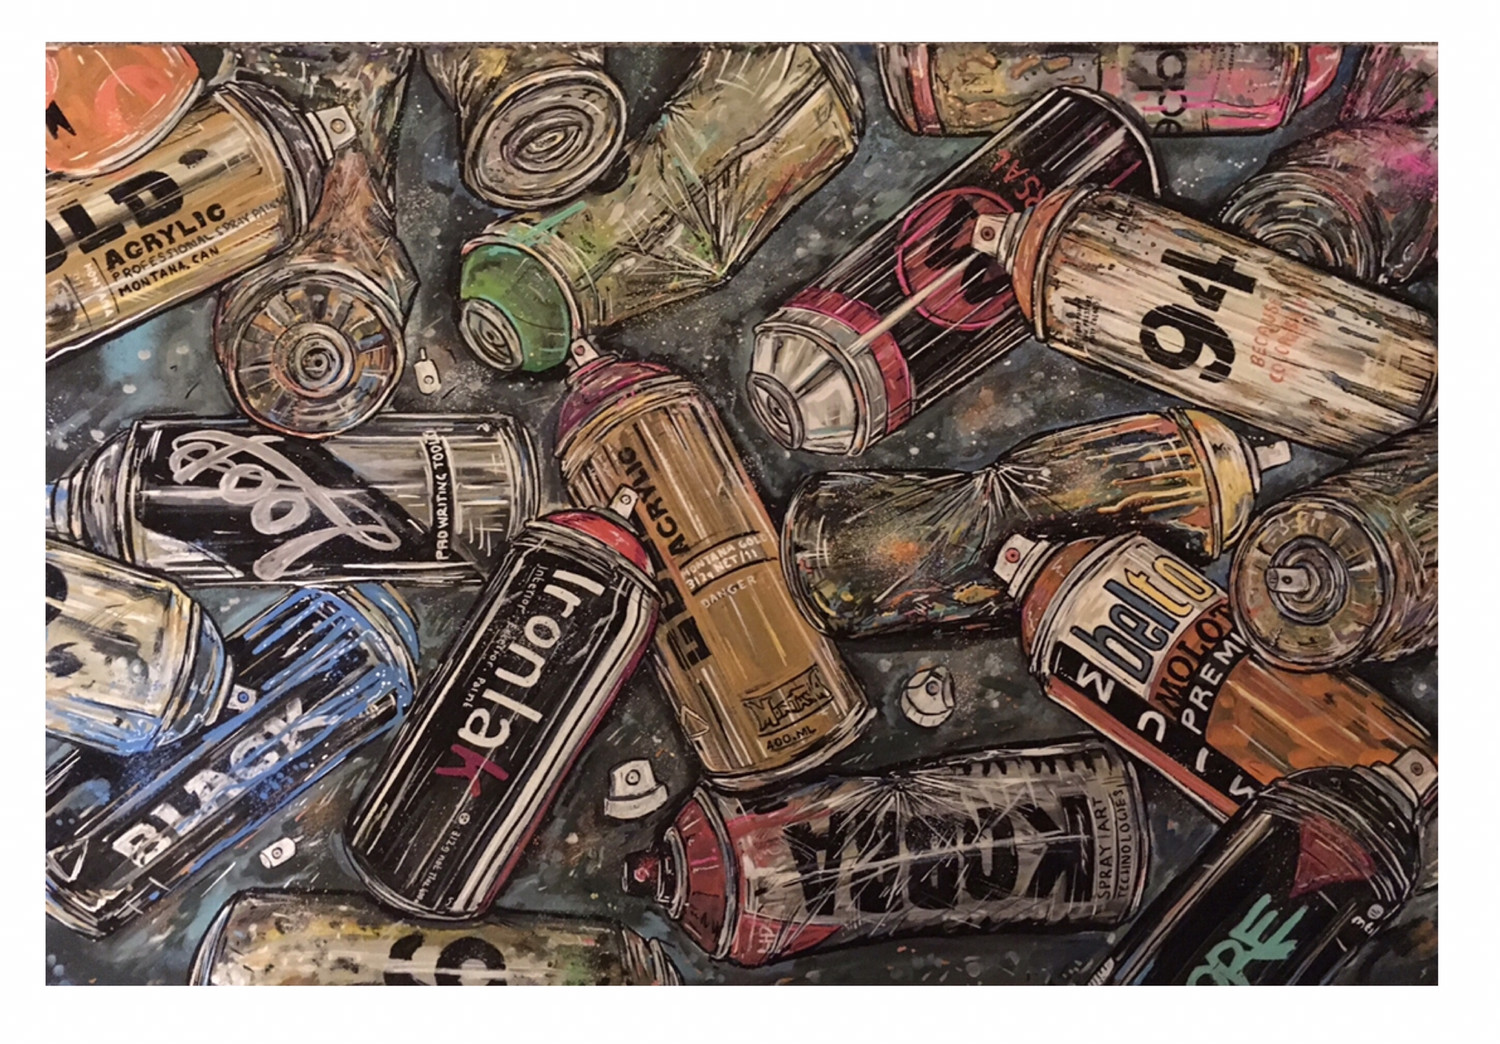 Empty Cans - Limited Edition Giclee Print (A3 Size)